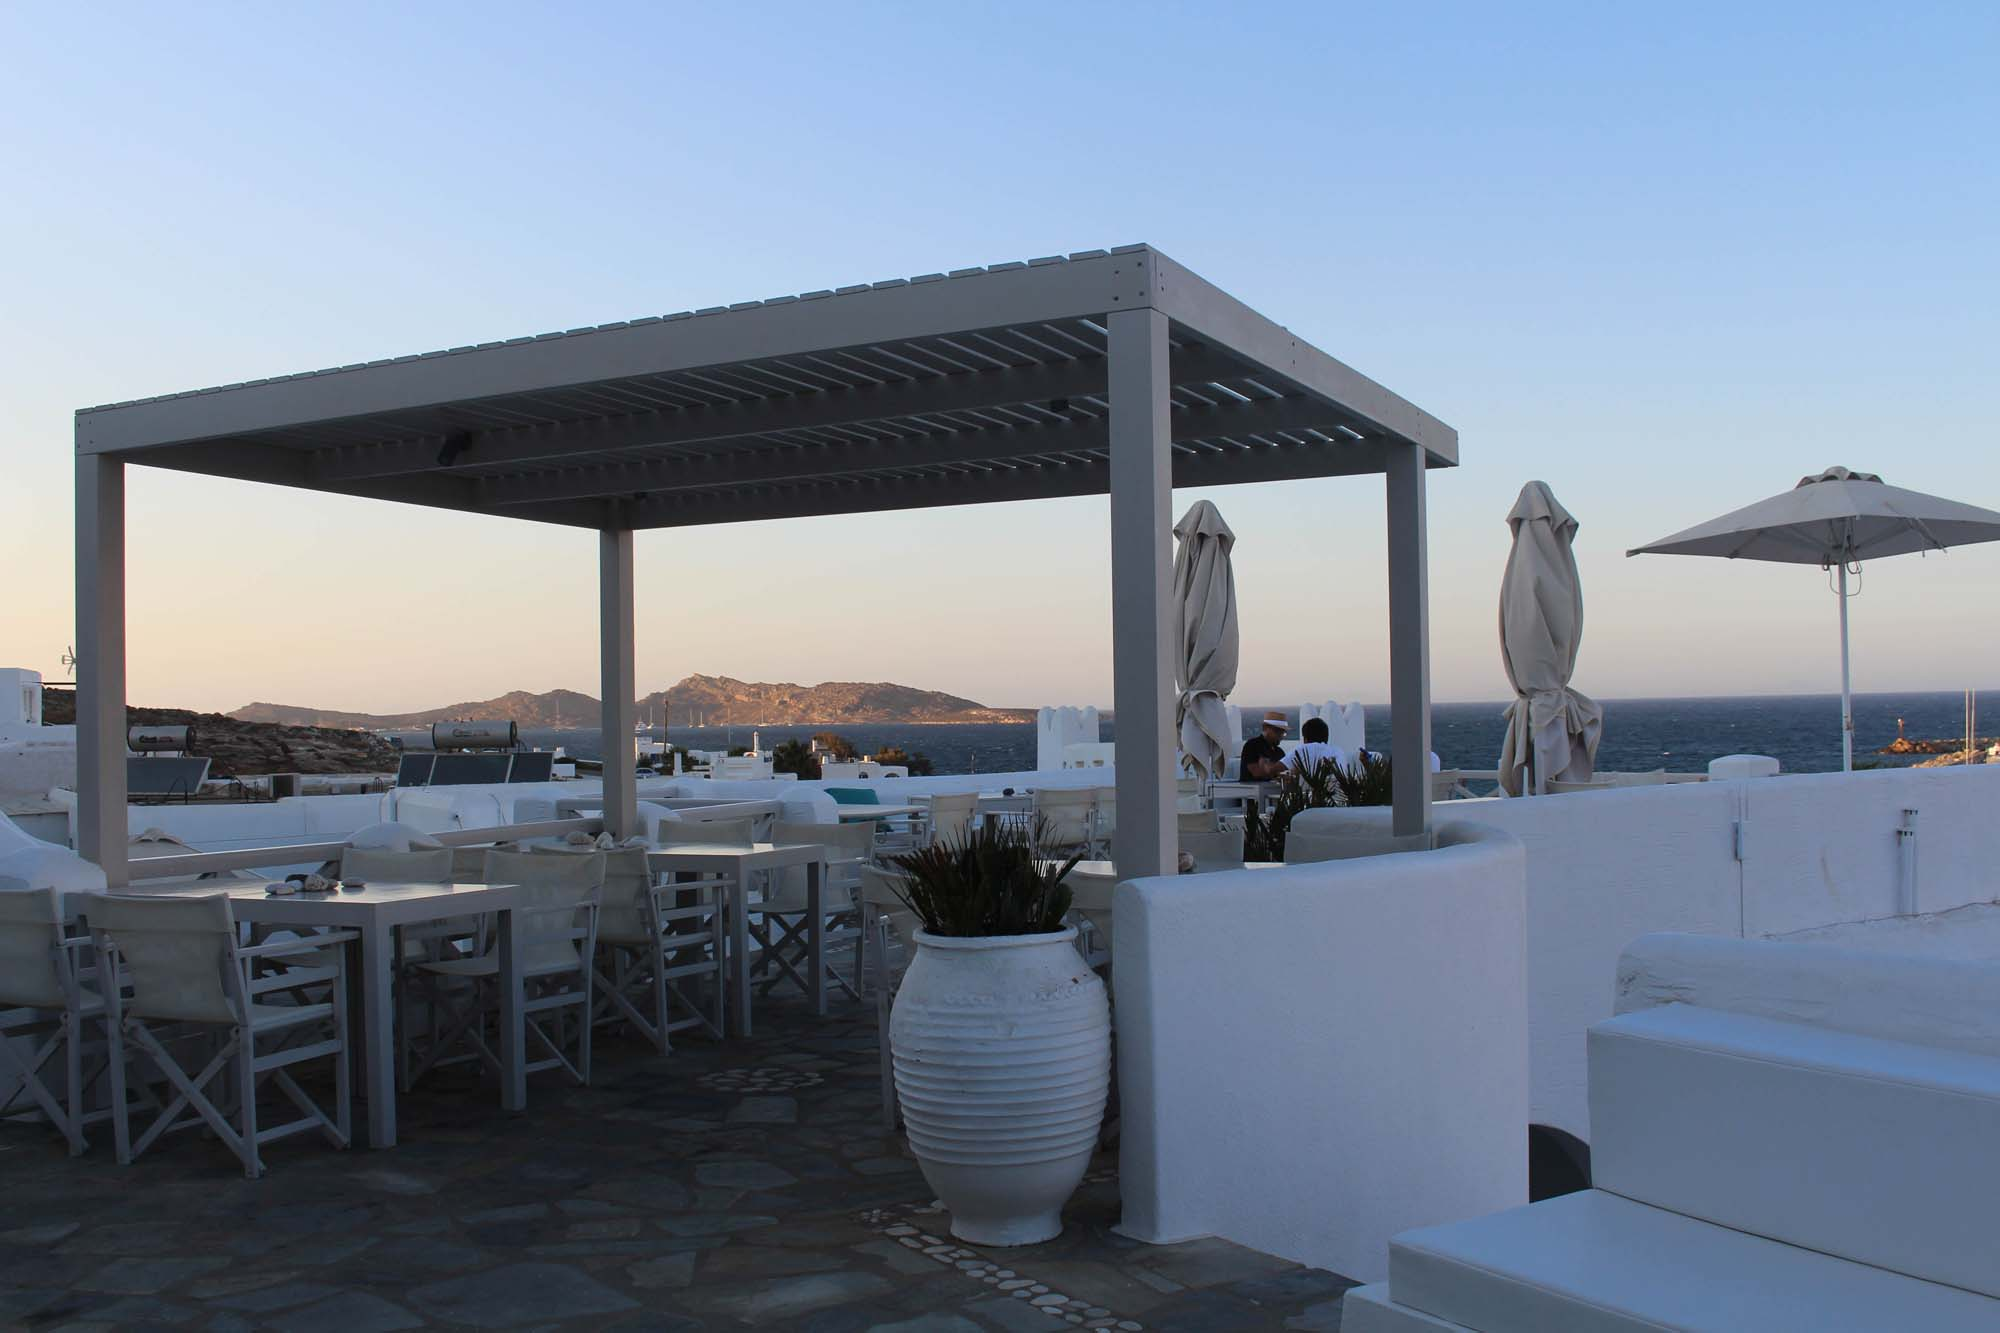 greece-paros-travel-linstantflo-35-sur-39